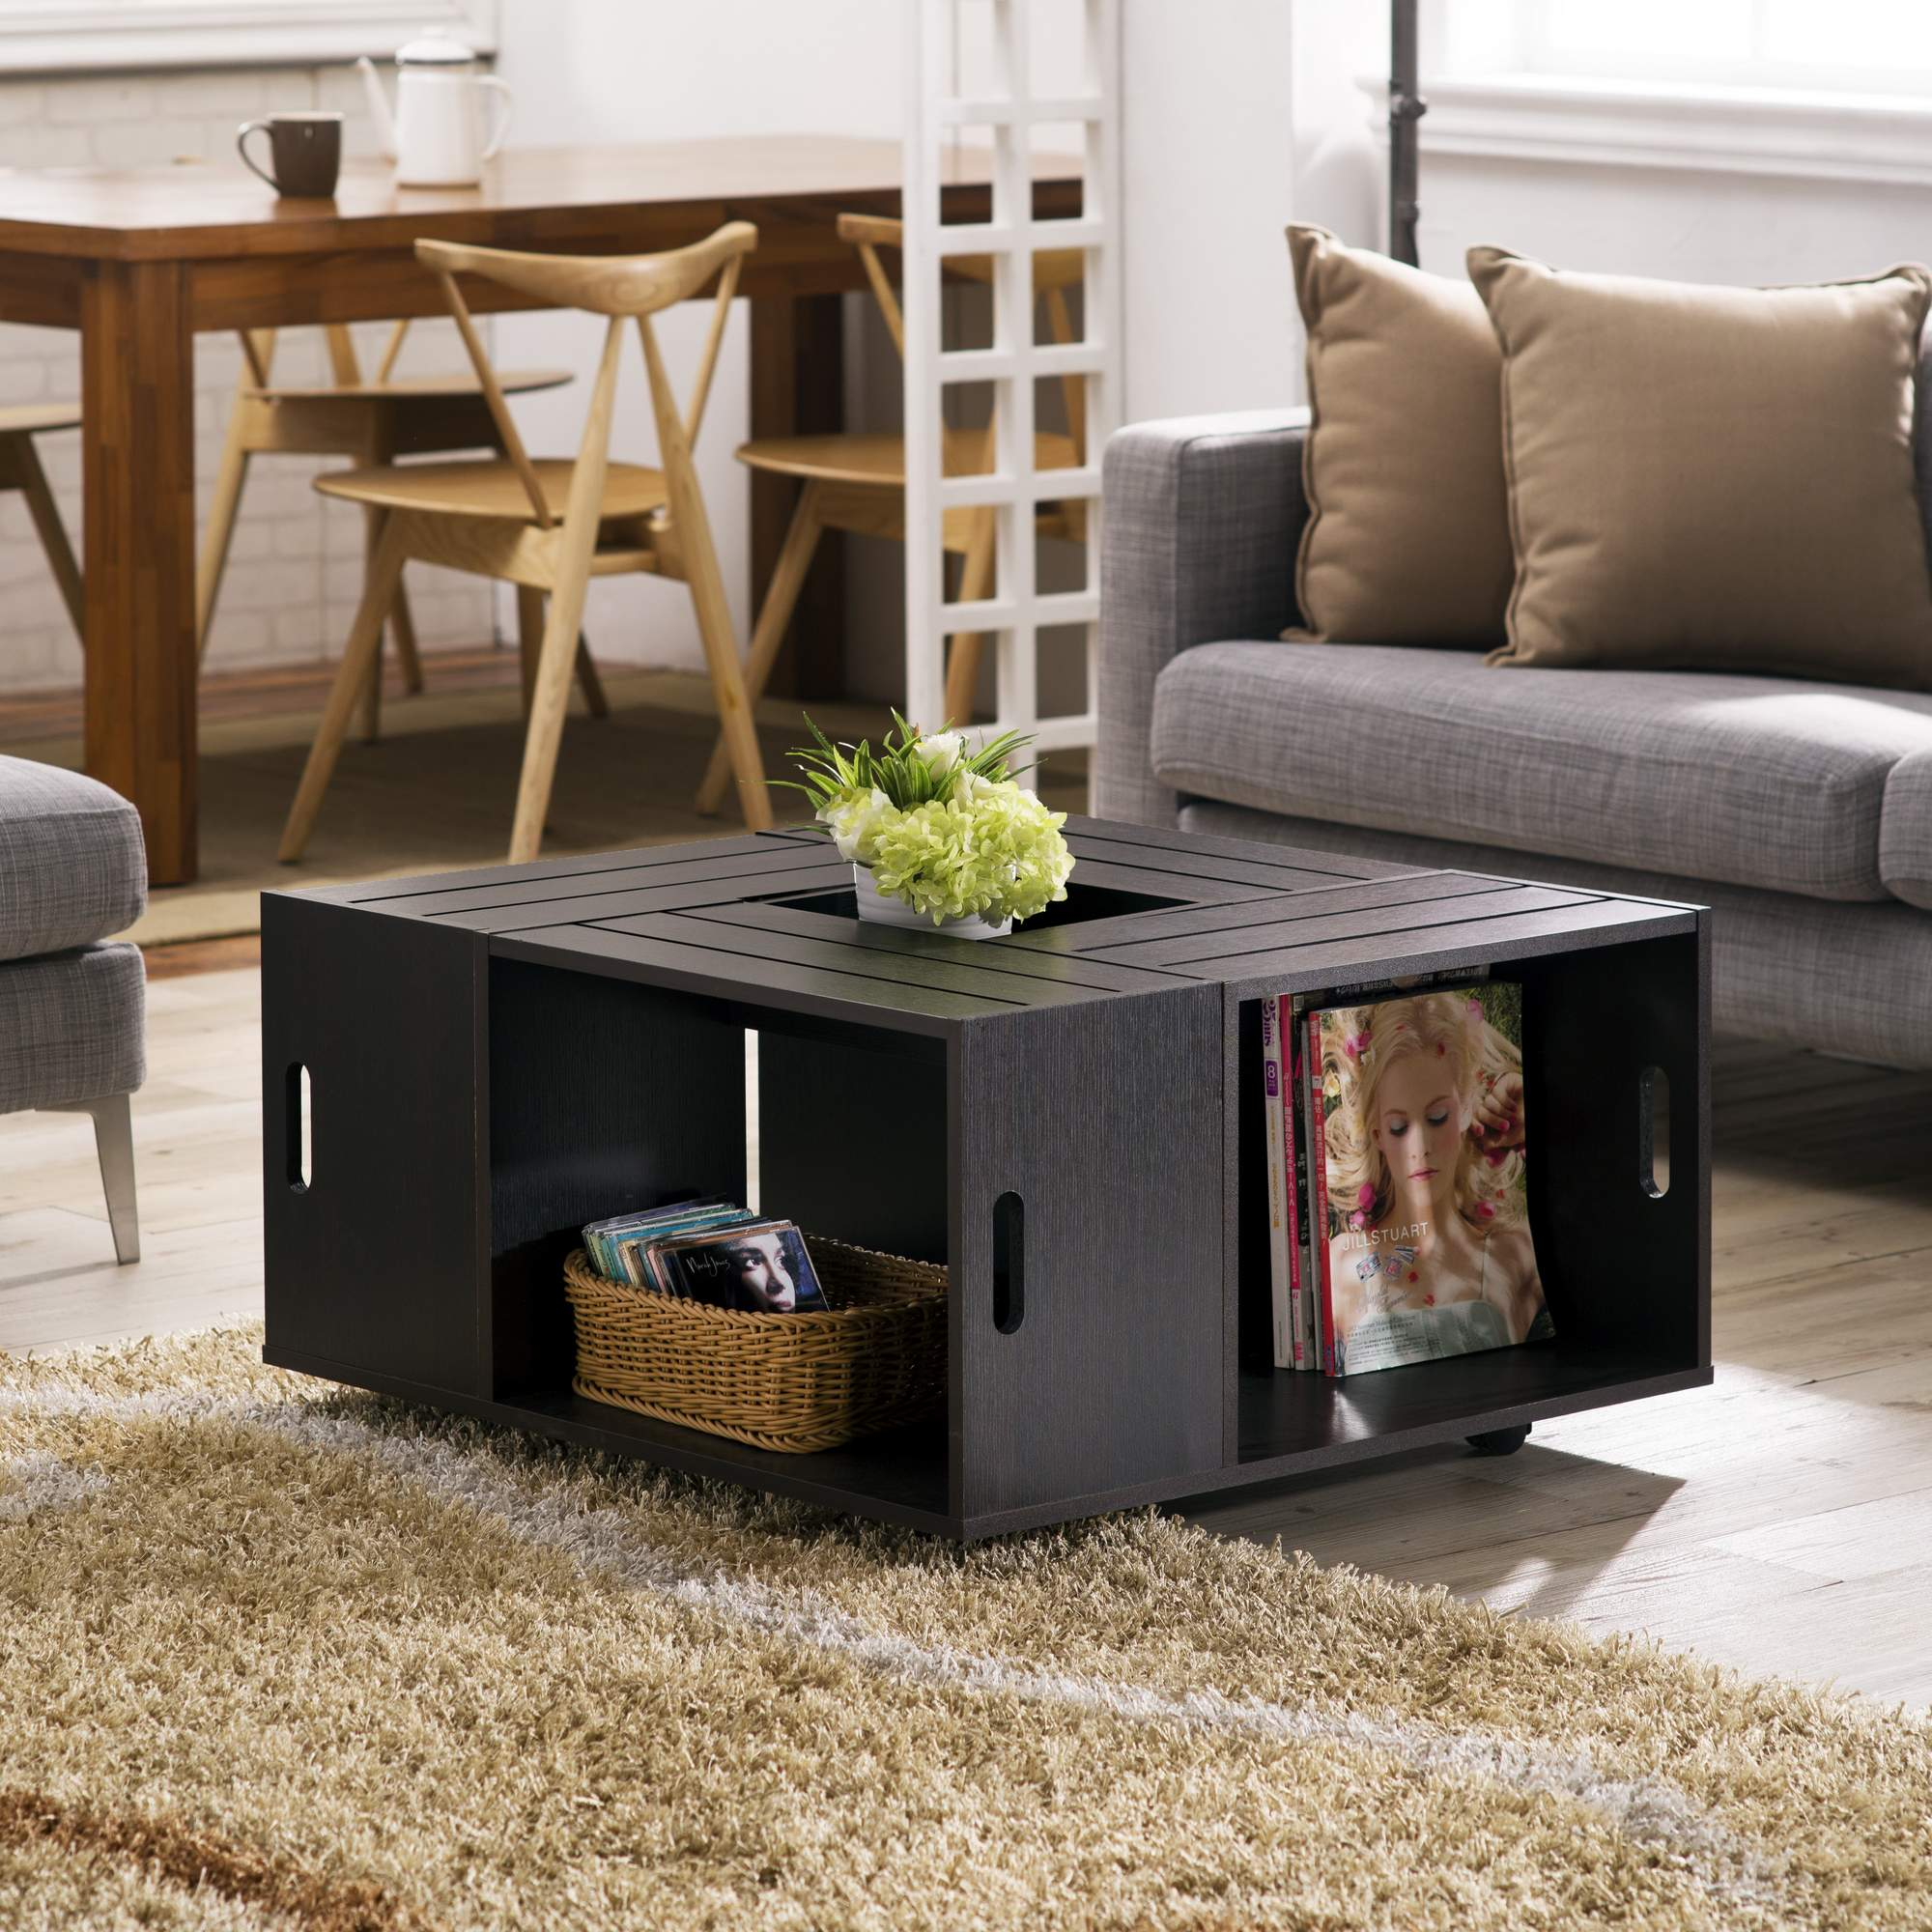 Healing 14.56 x 15.74 inches Small leather coffee table from Niger